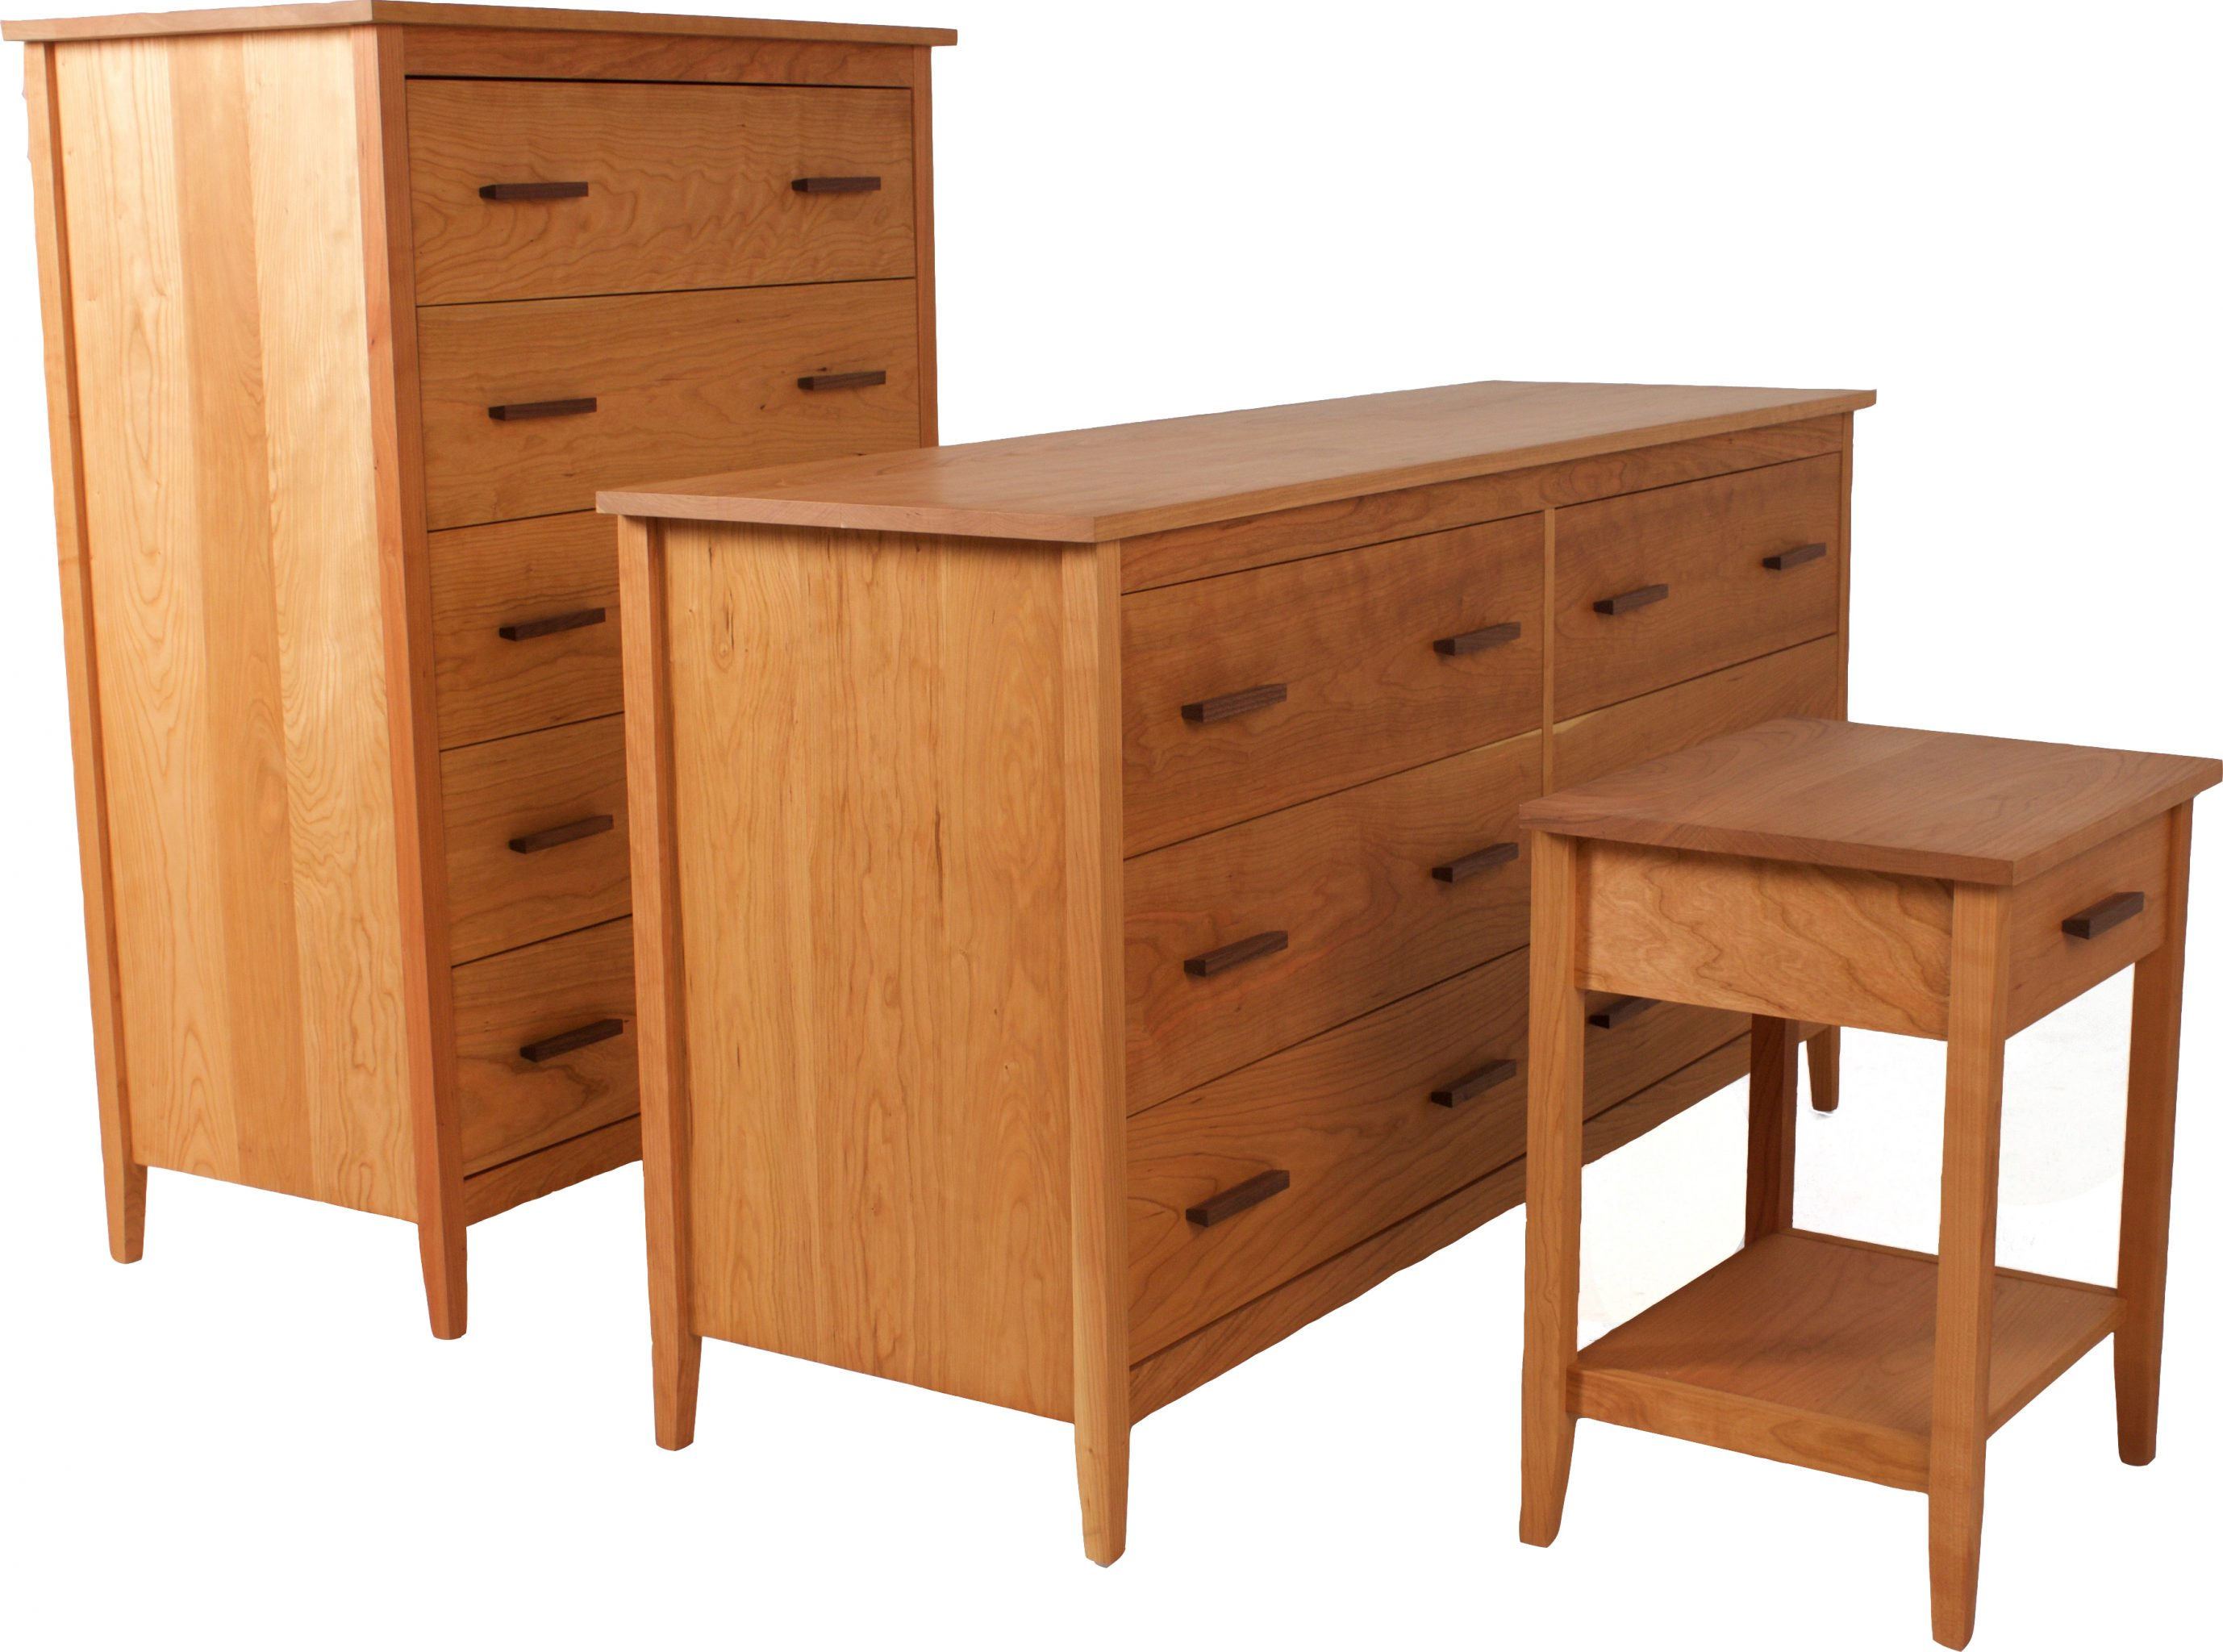 chest-dresser-night-table-angled